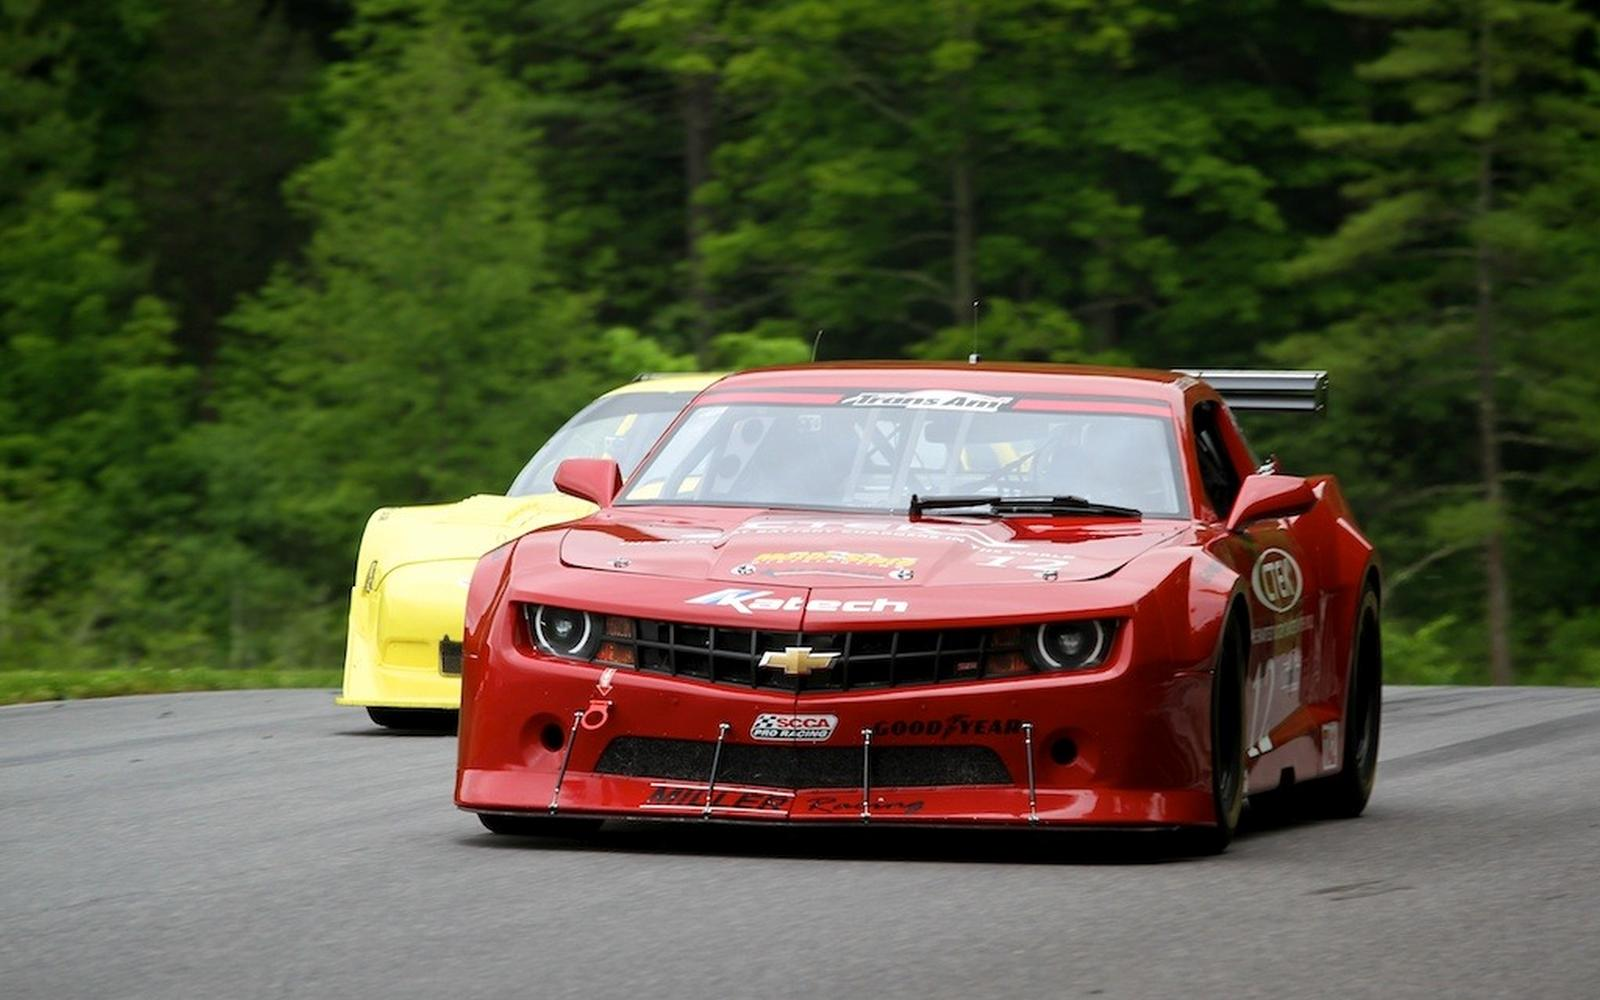 Trans Am Series to make 35th Appearance at Watkins Glen